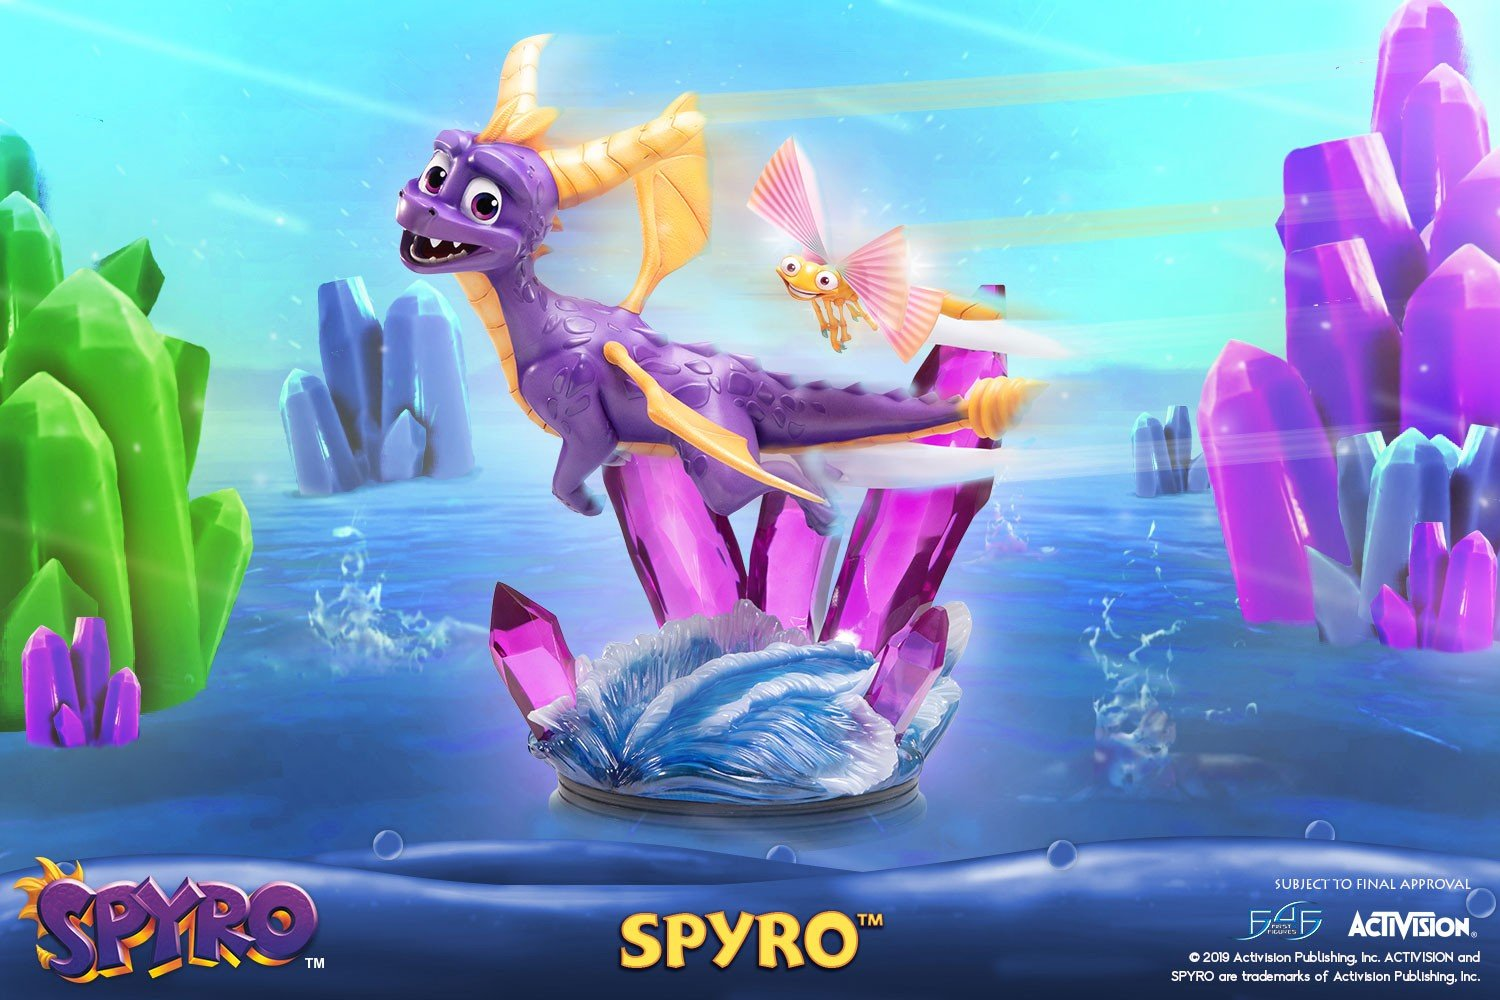 spyro the dragon first 4 figures